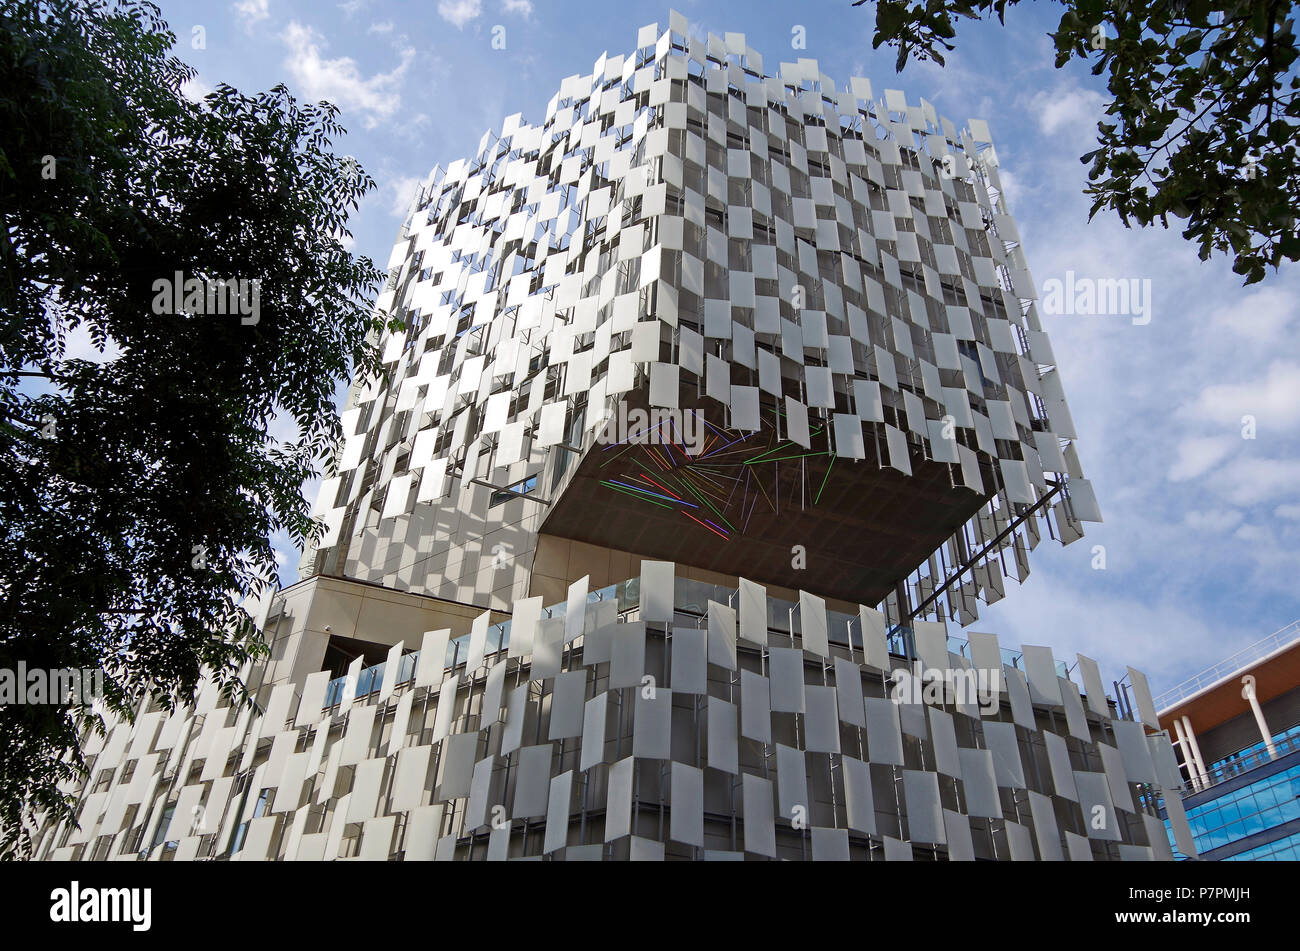 Marseille, the FRAC building, contemporary art centre with a chequered glass facade by Japanese architect Kengo Kuma - Stock Image